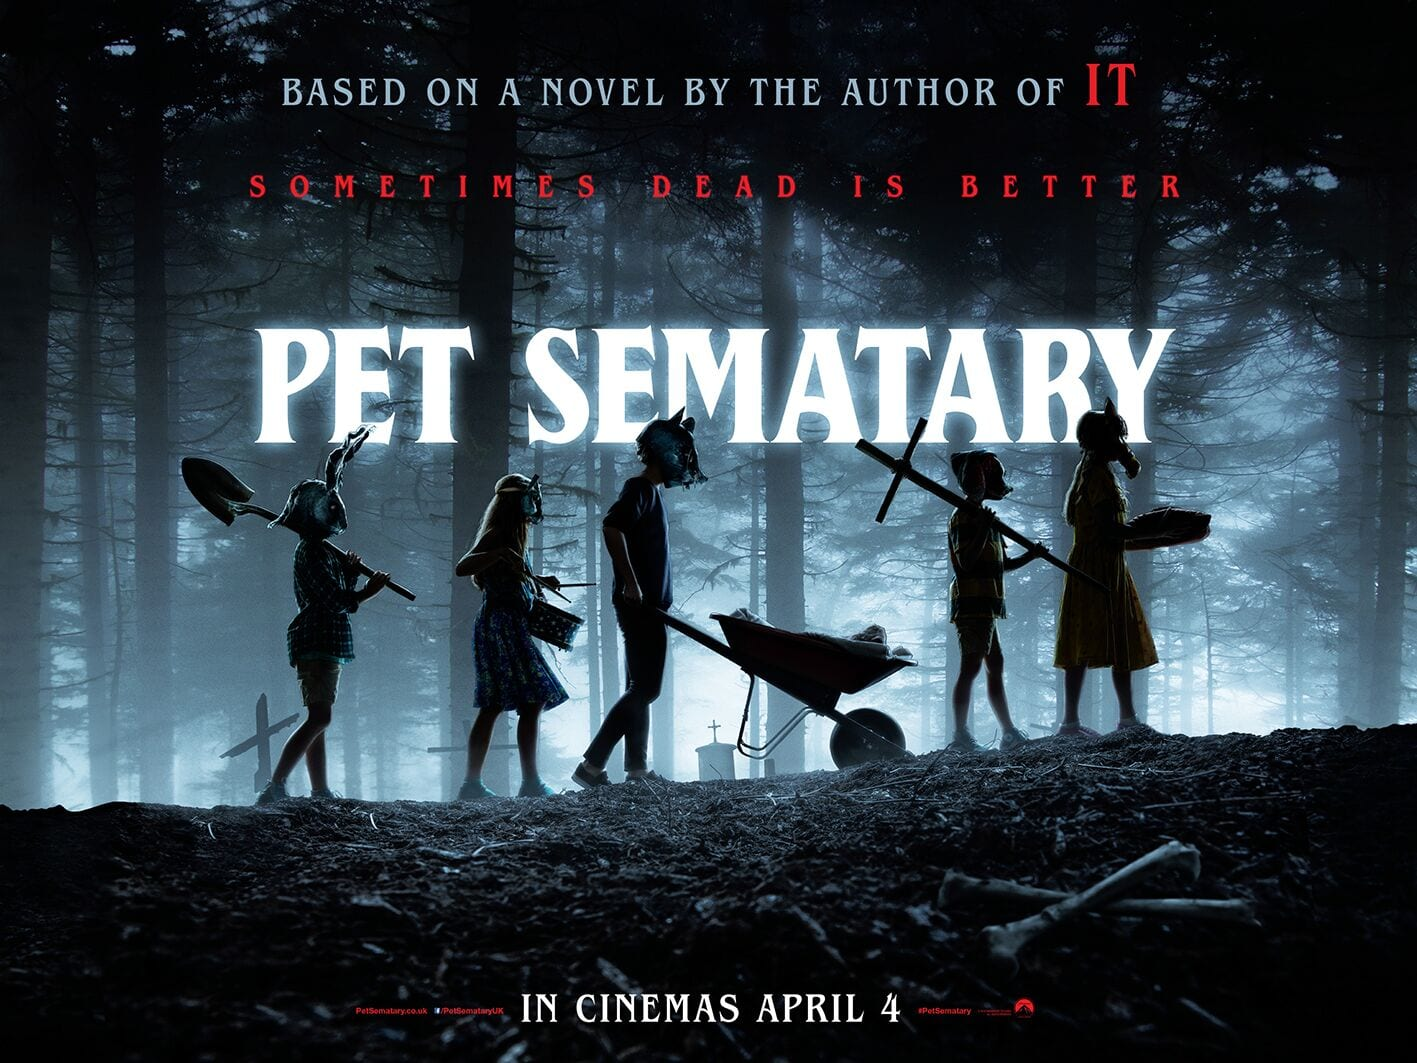 Movie Poster 2019: Movie Review - Pet Sematary (2019)